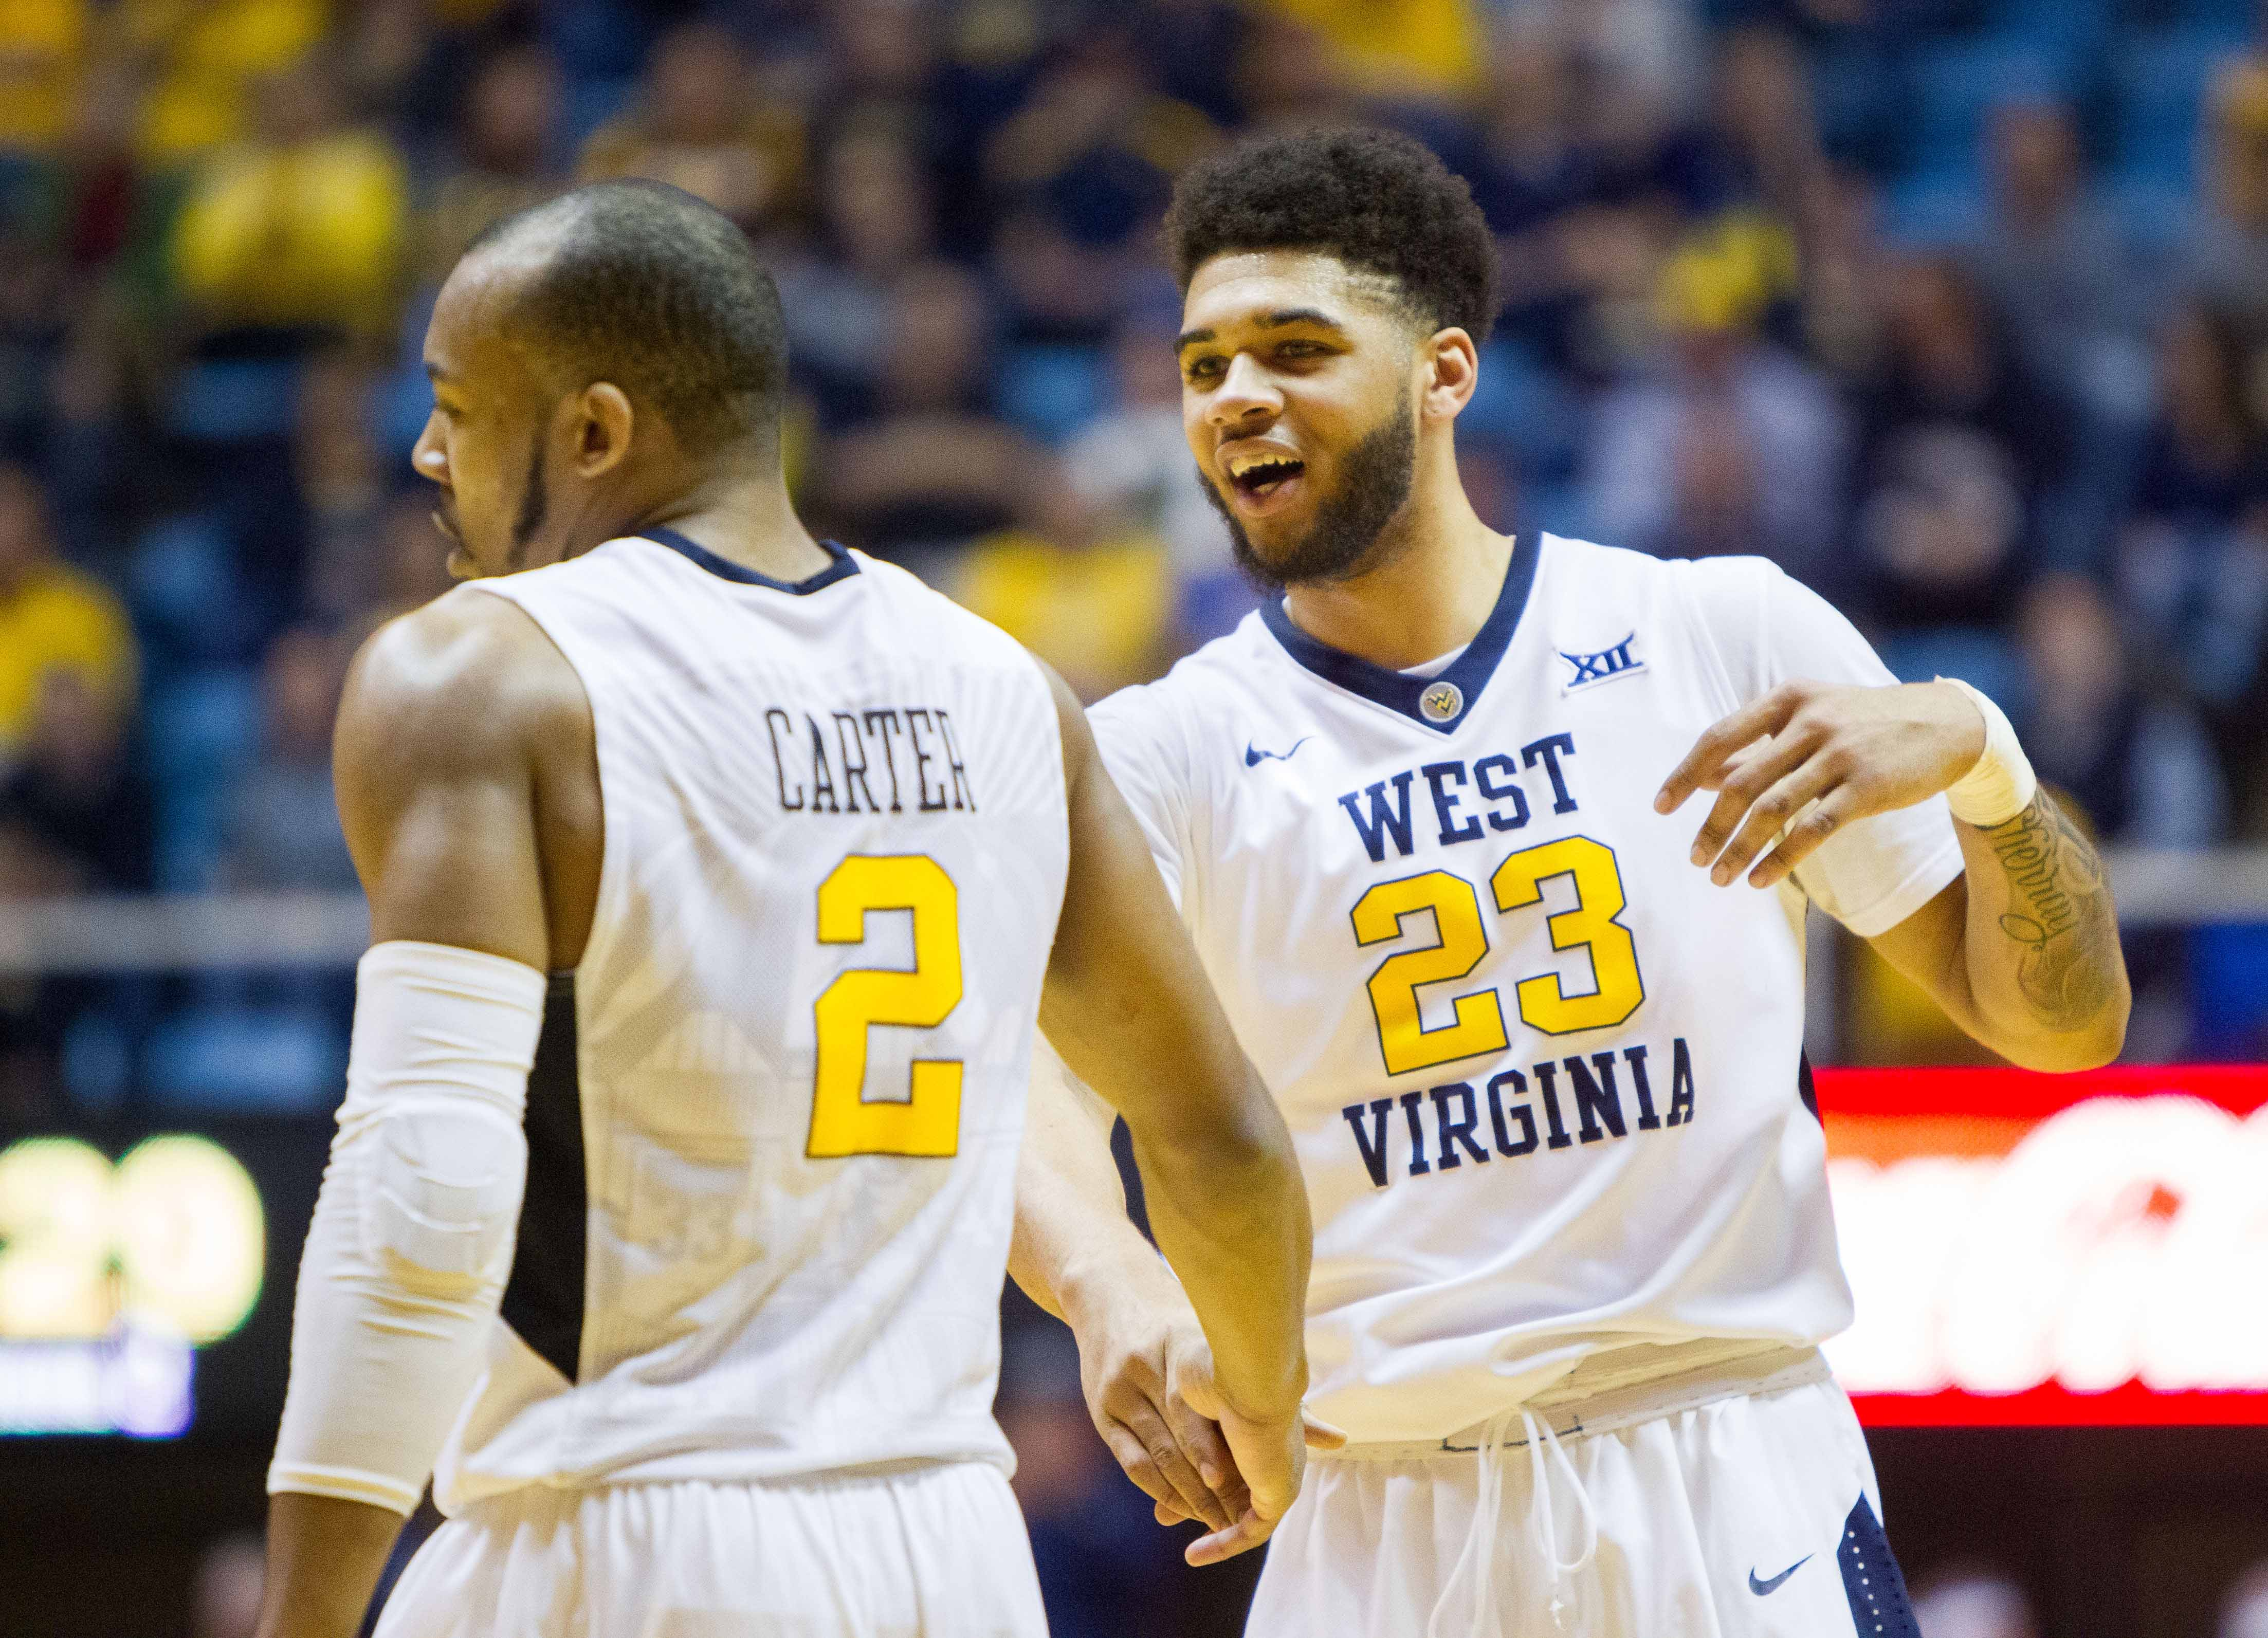 Feb 11, 2017; Morgantown, WV, USA; West Virginia Mountaineers forward Esa Ahmad (23) and guard Jevon Carter (2) celebrate during the second half against the Kansas State Wildcats at WVU Coliseum. Mandatory Credit: Ben Queen-USA TODAY Sports